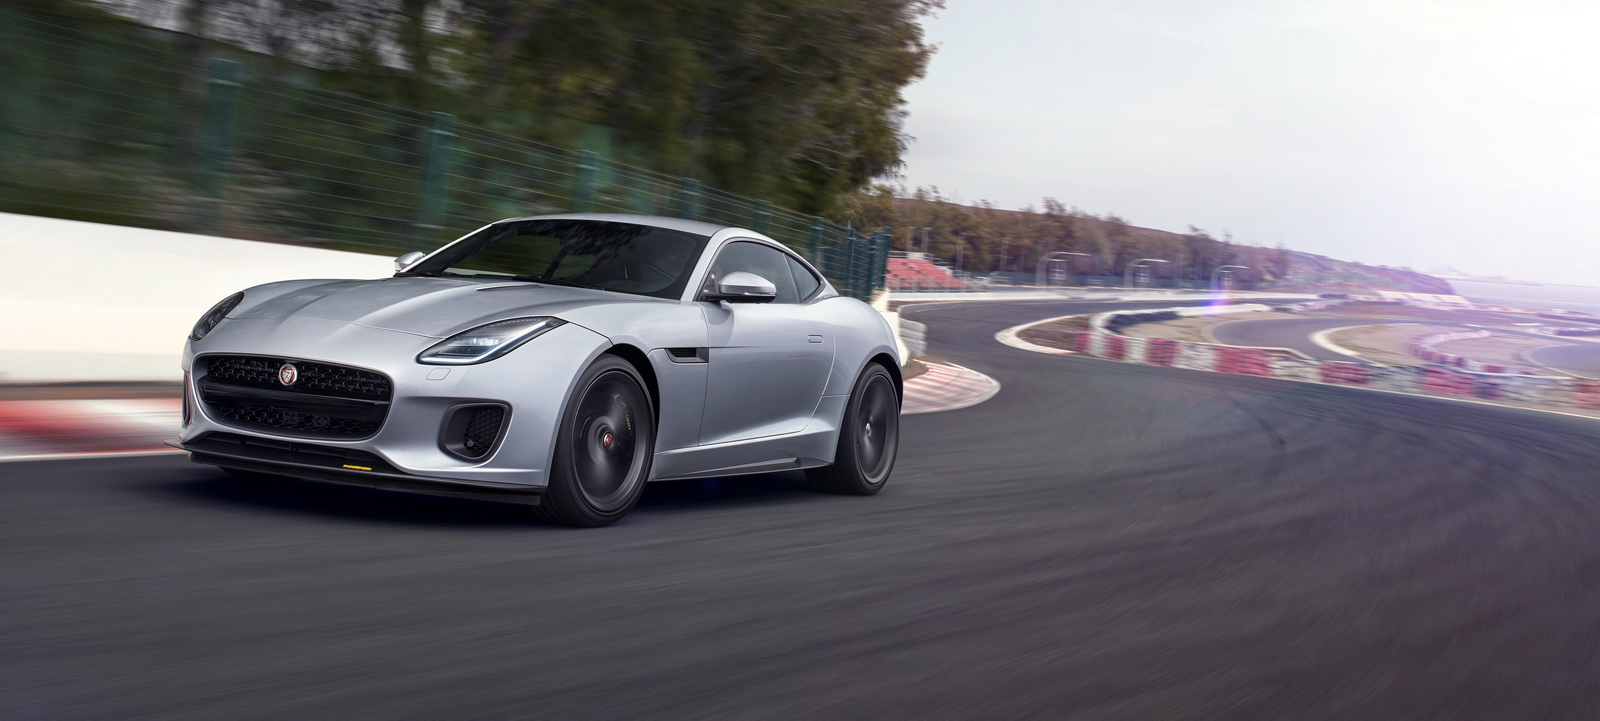 updated 2018 jaguar f type revealed gains new 400 sport launch edition carscoops. Black Bedroom Furniture Sets. Home Design Ideas